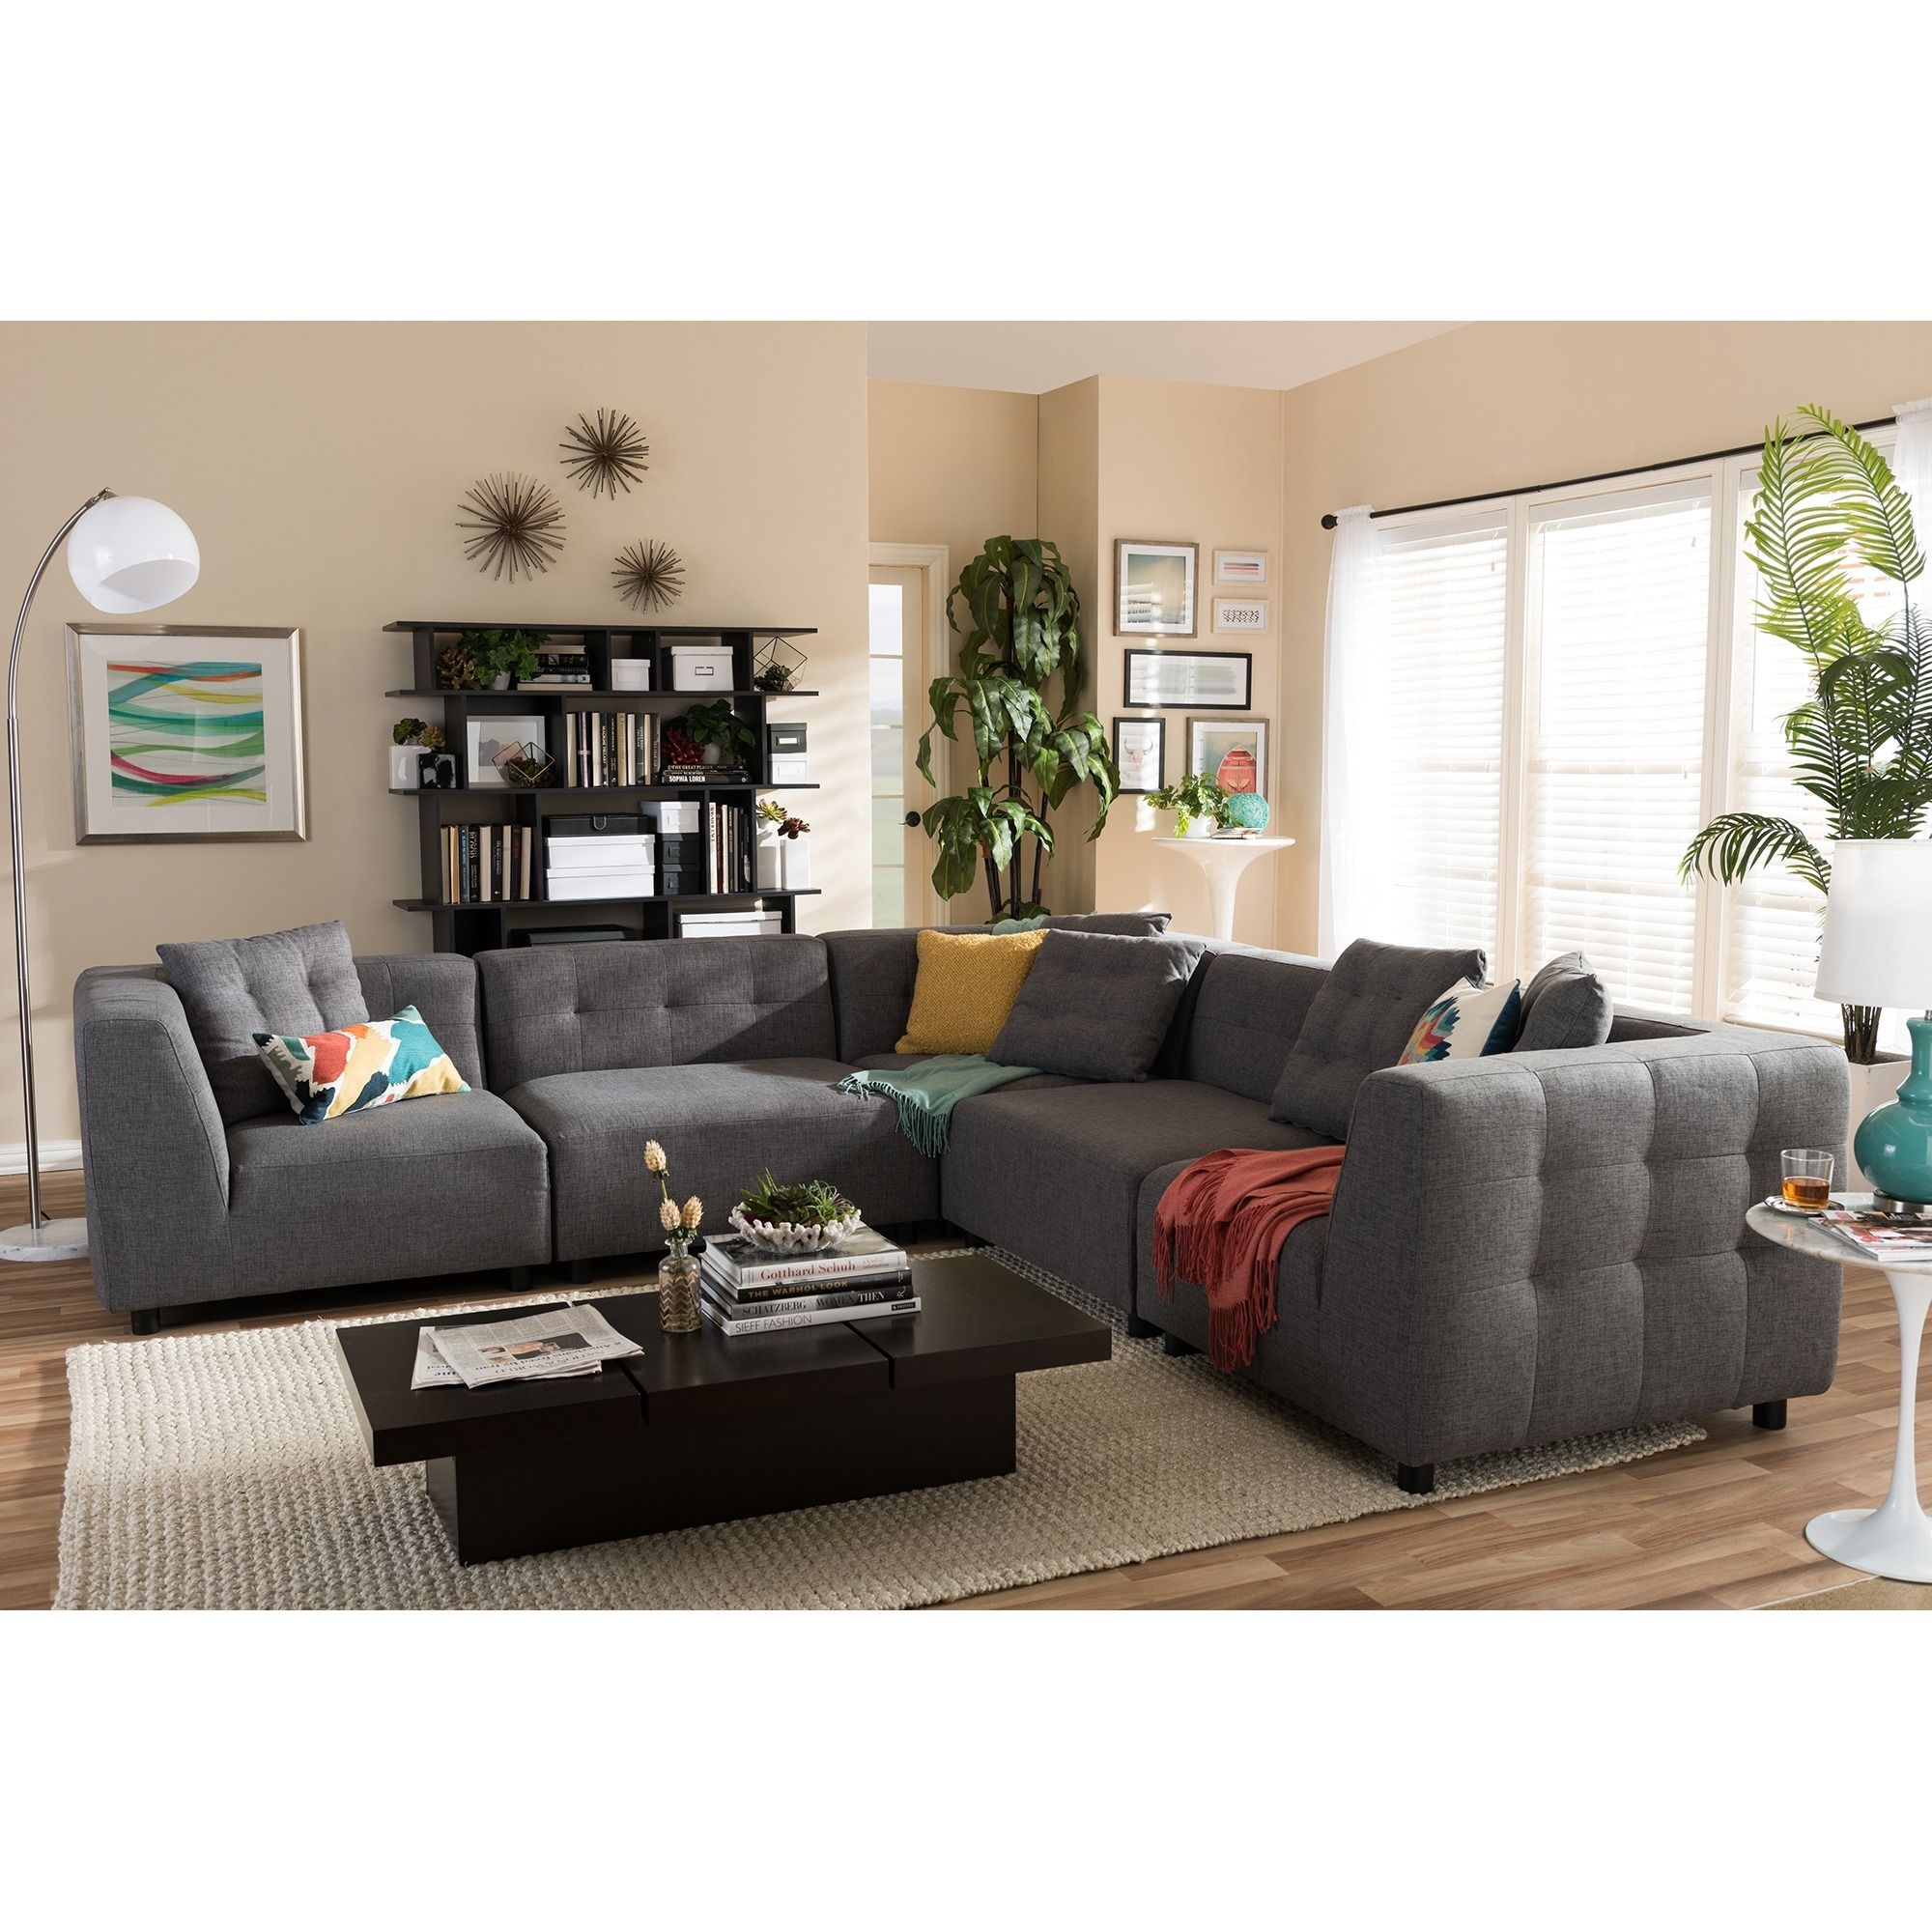 Separate Sectional Sofa Pieces Baci Living Room